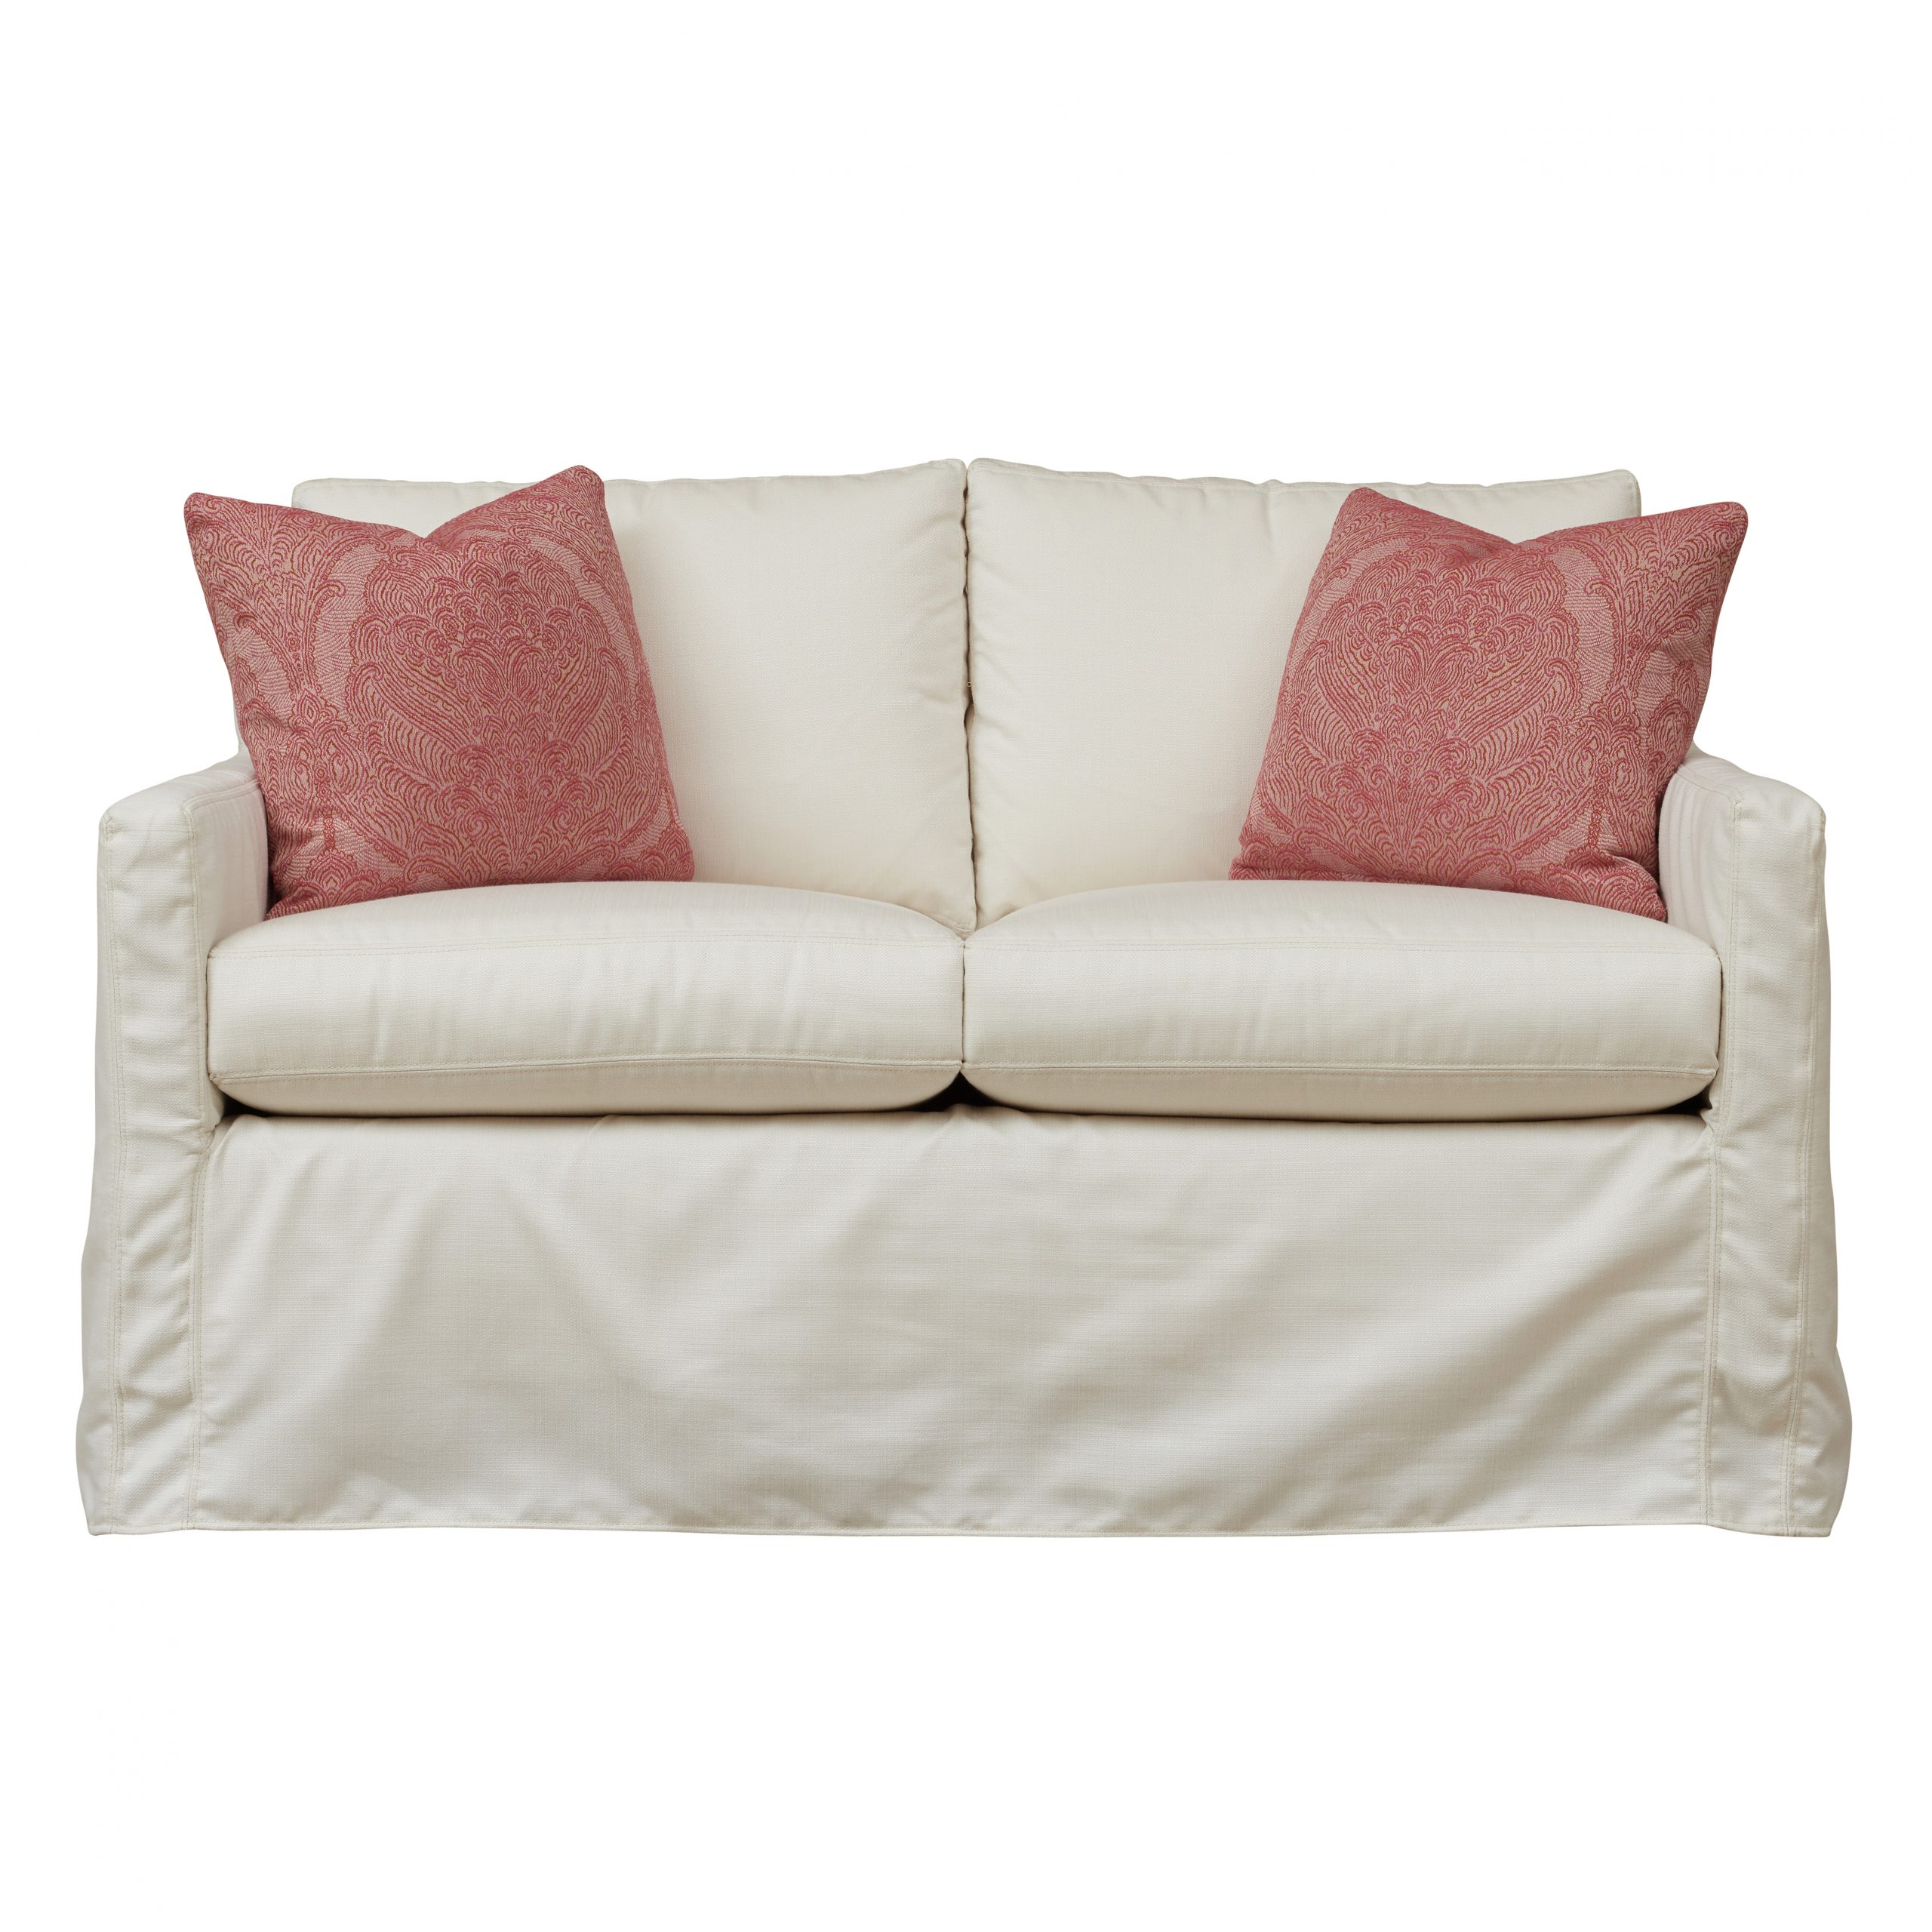 Famous Loveseat Glider Benches With Cushions With Regard To Oscar Outdoor Slipcover Loveseat Glider – Southern Furniture (View 18 of 30)